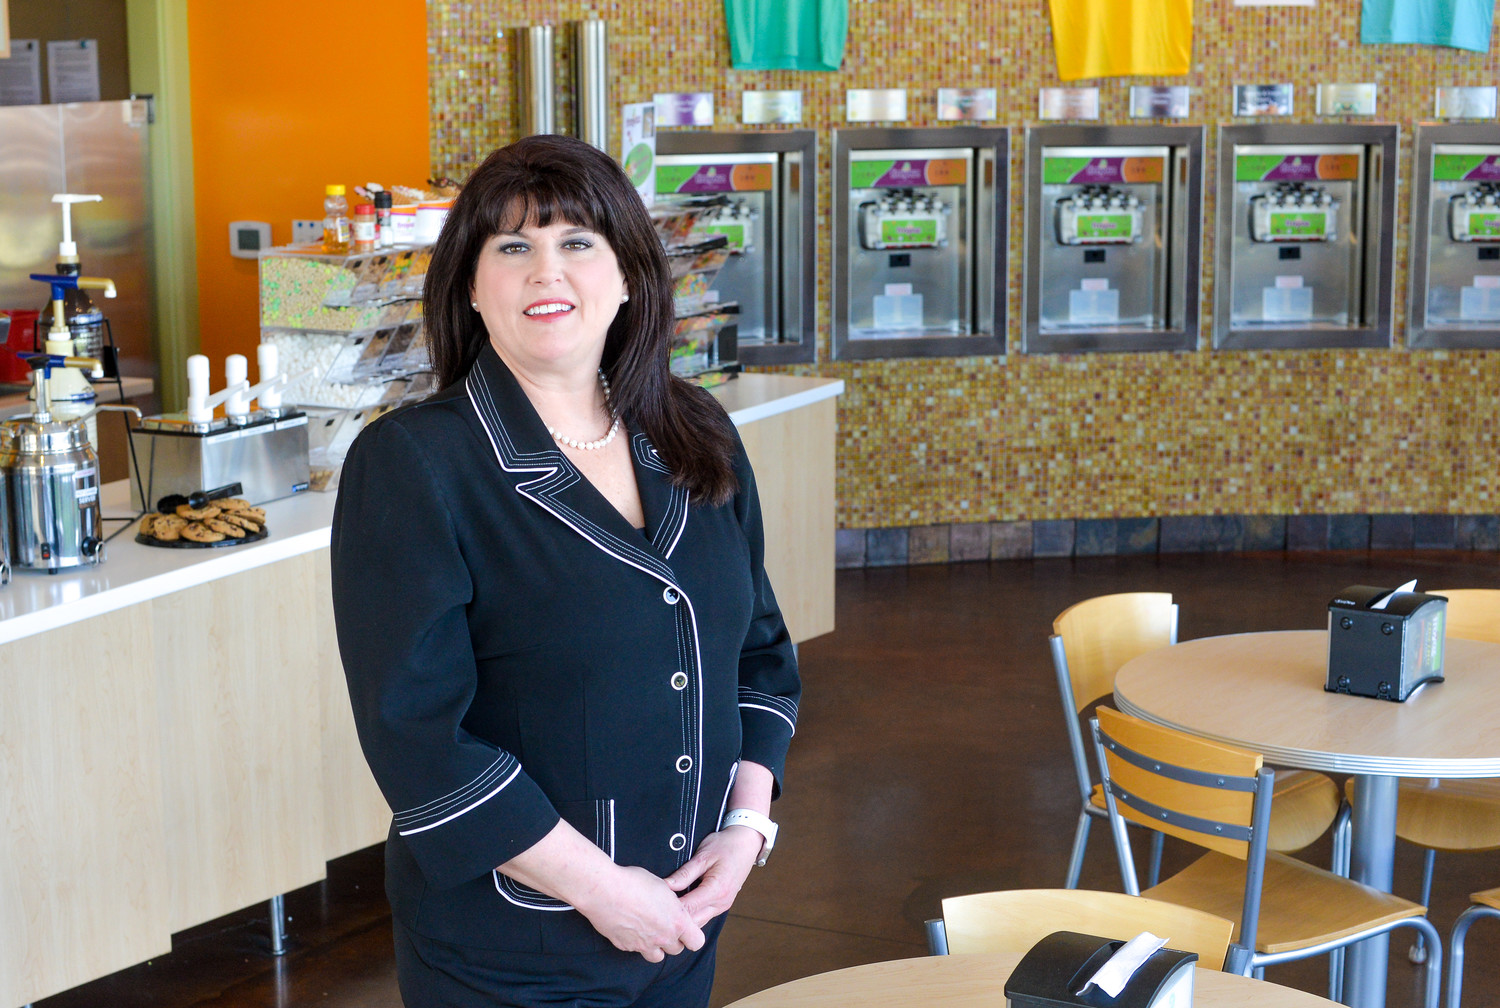 Chief nursing officer by day, Krista Baty also owns and operates the FroYo store in Cedar Park.